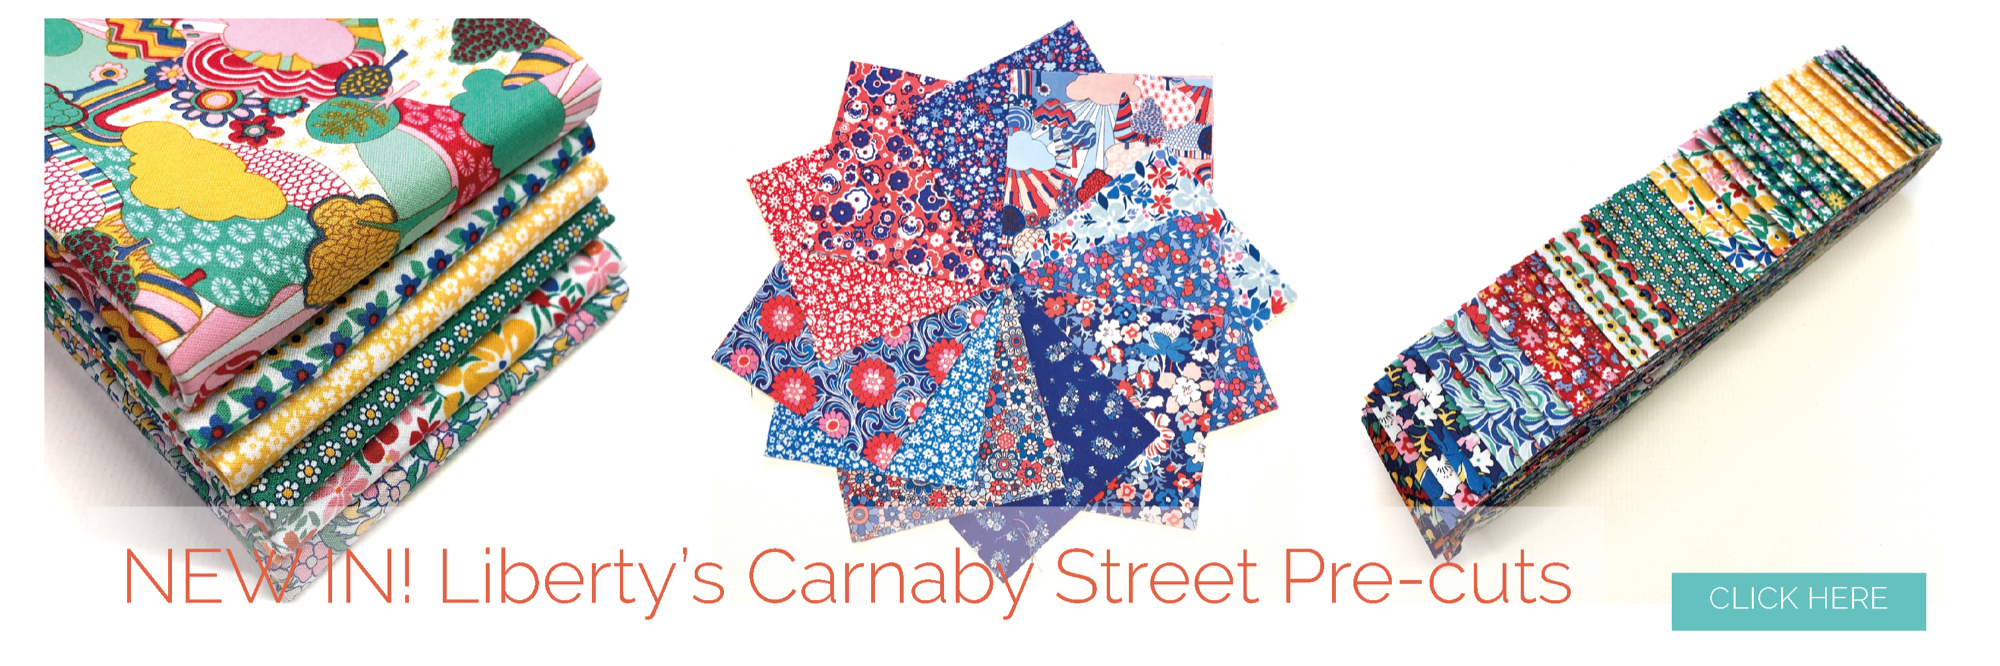 Carnaby Street Pre-cuts banner.png